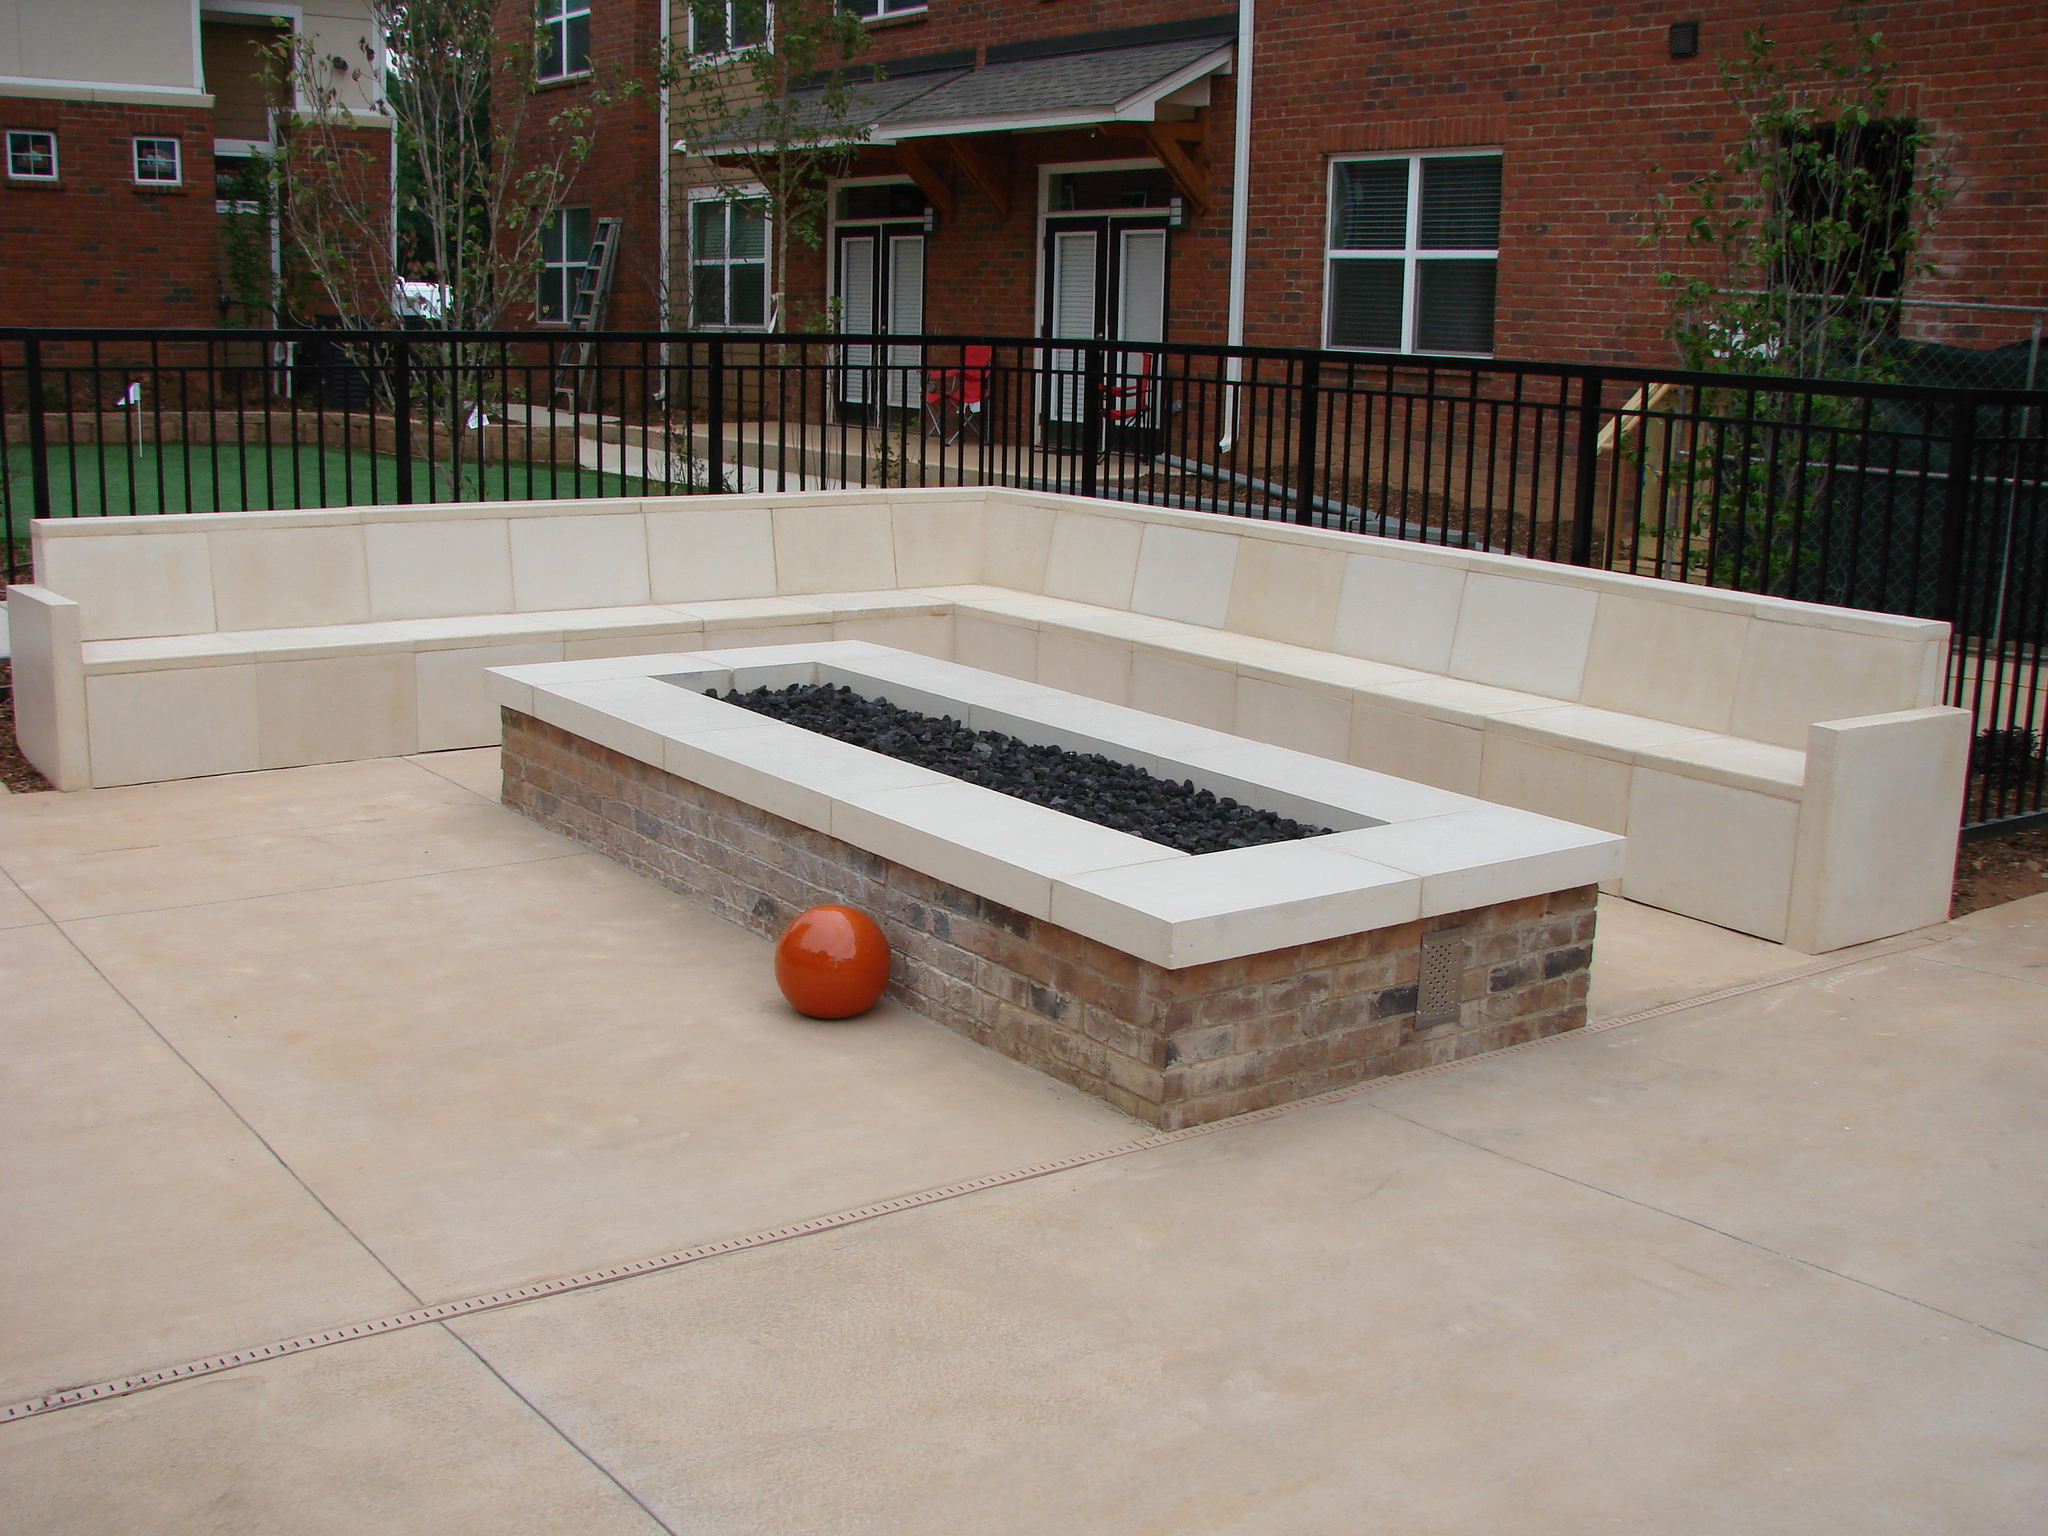 Classic Precast Llc Precast Bench And Fire Pit Cap Image Proview intended for proportions 2048 X 1536